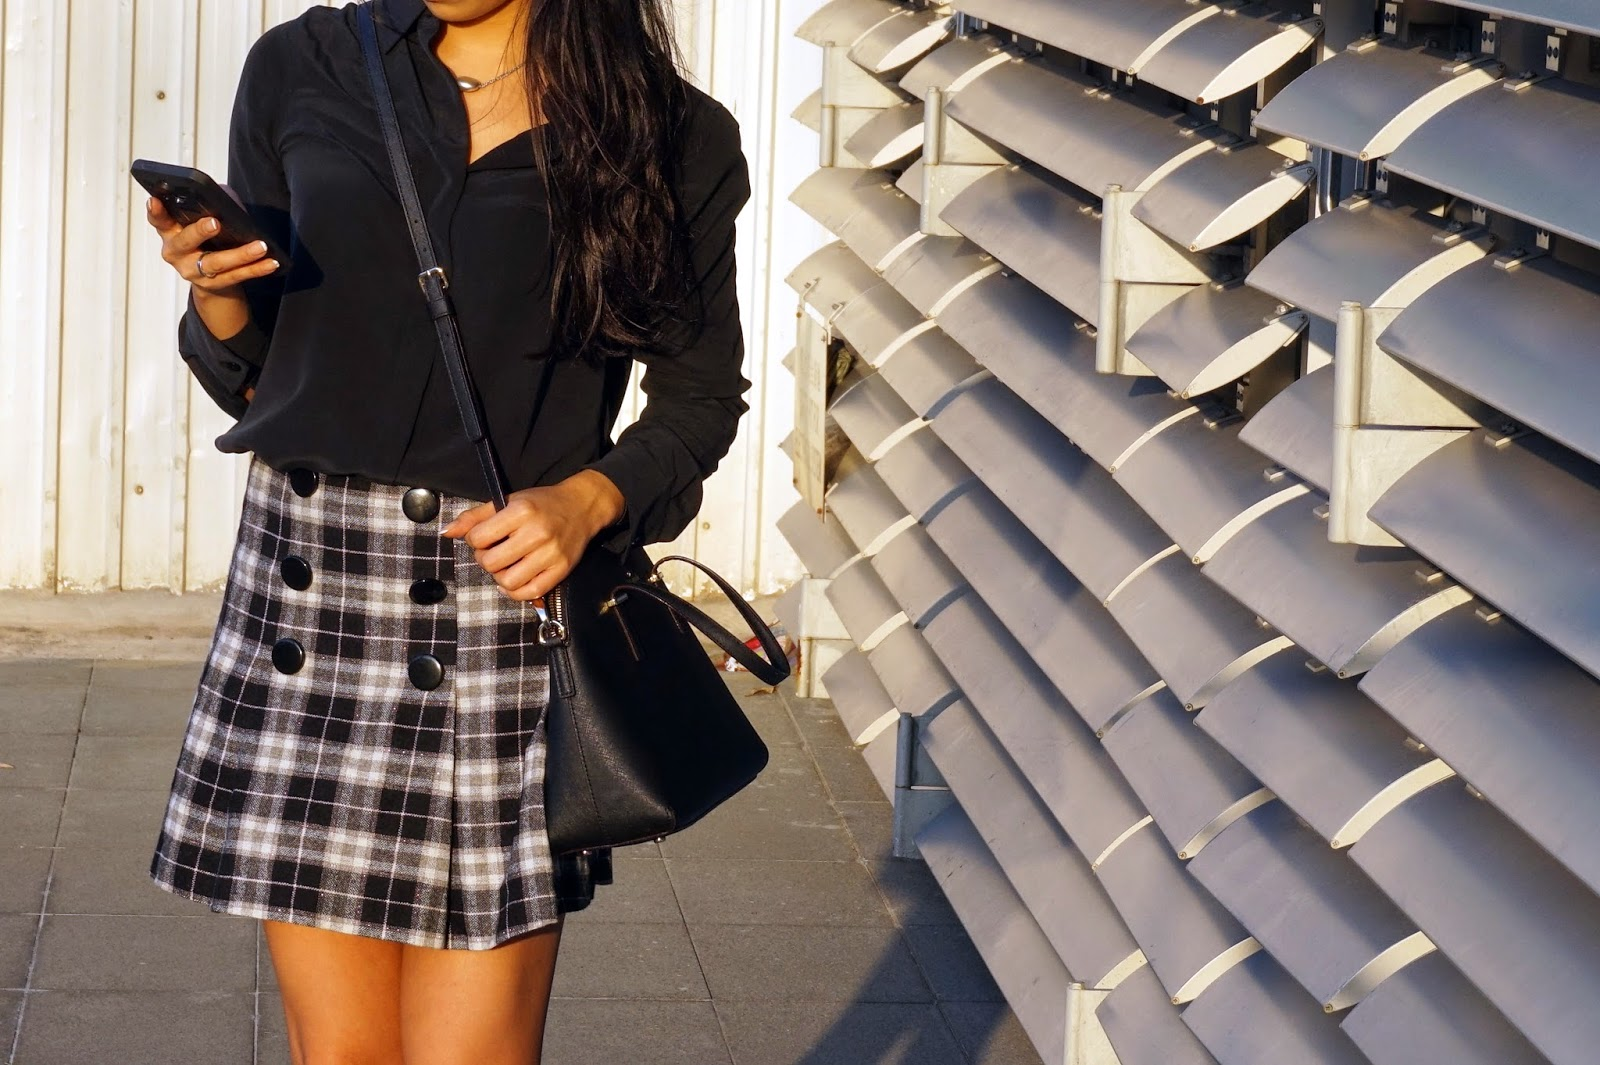 Grana black silk shirt Hong Kong school girl skirt heels photography picture photo image